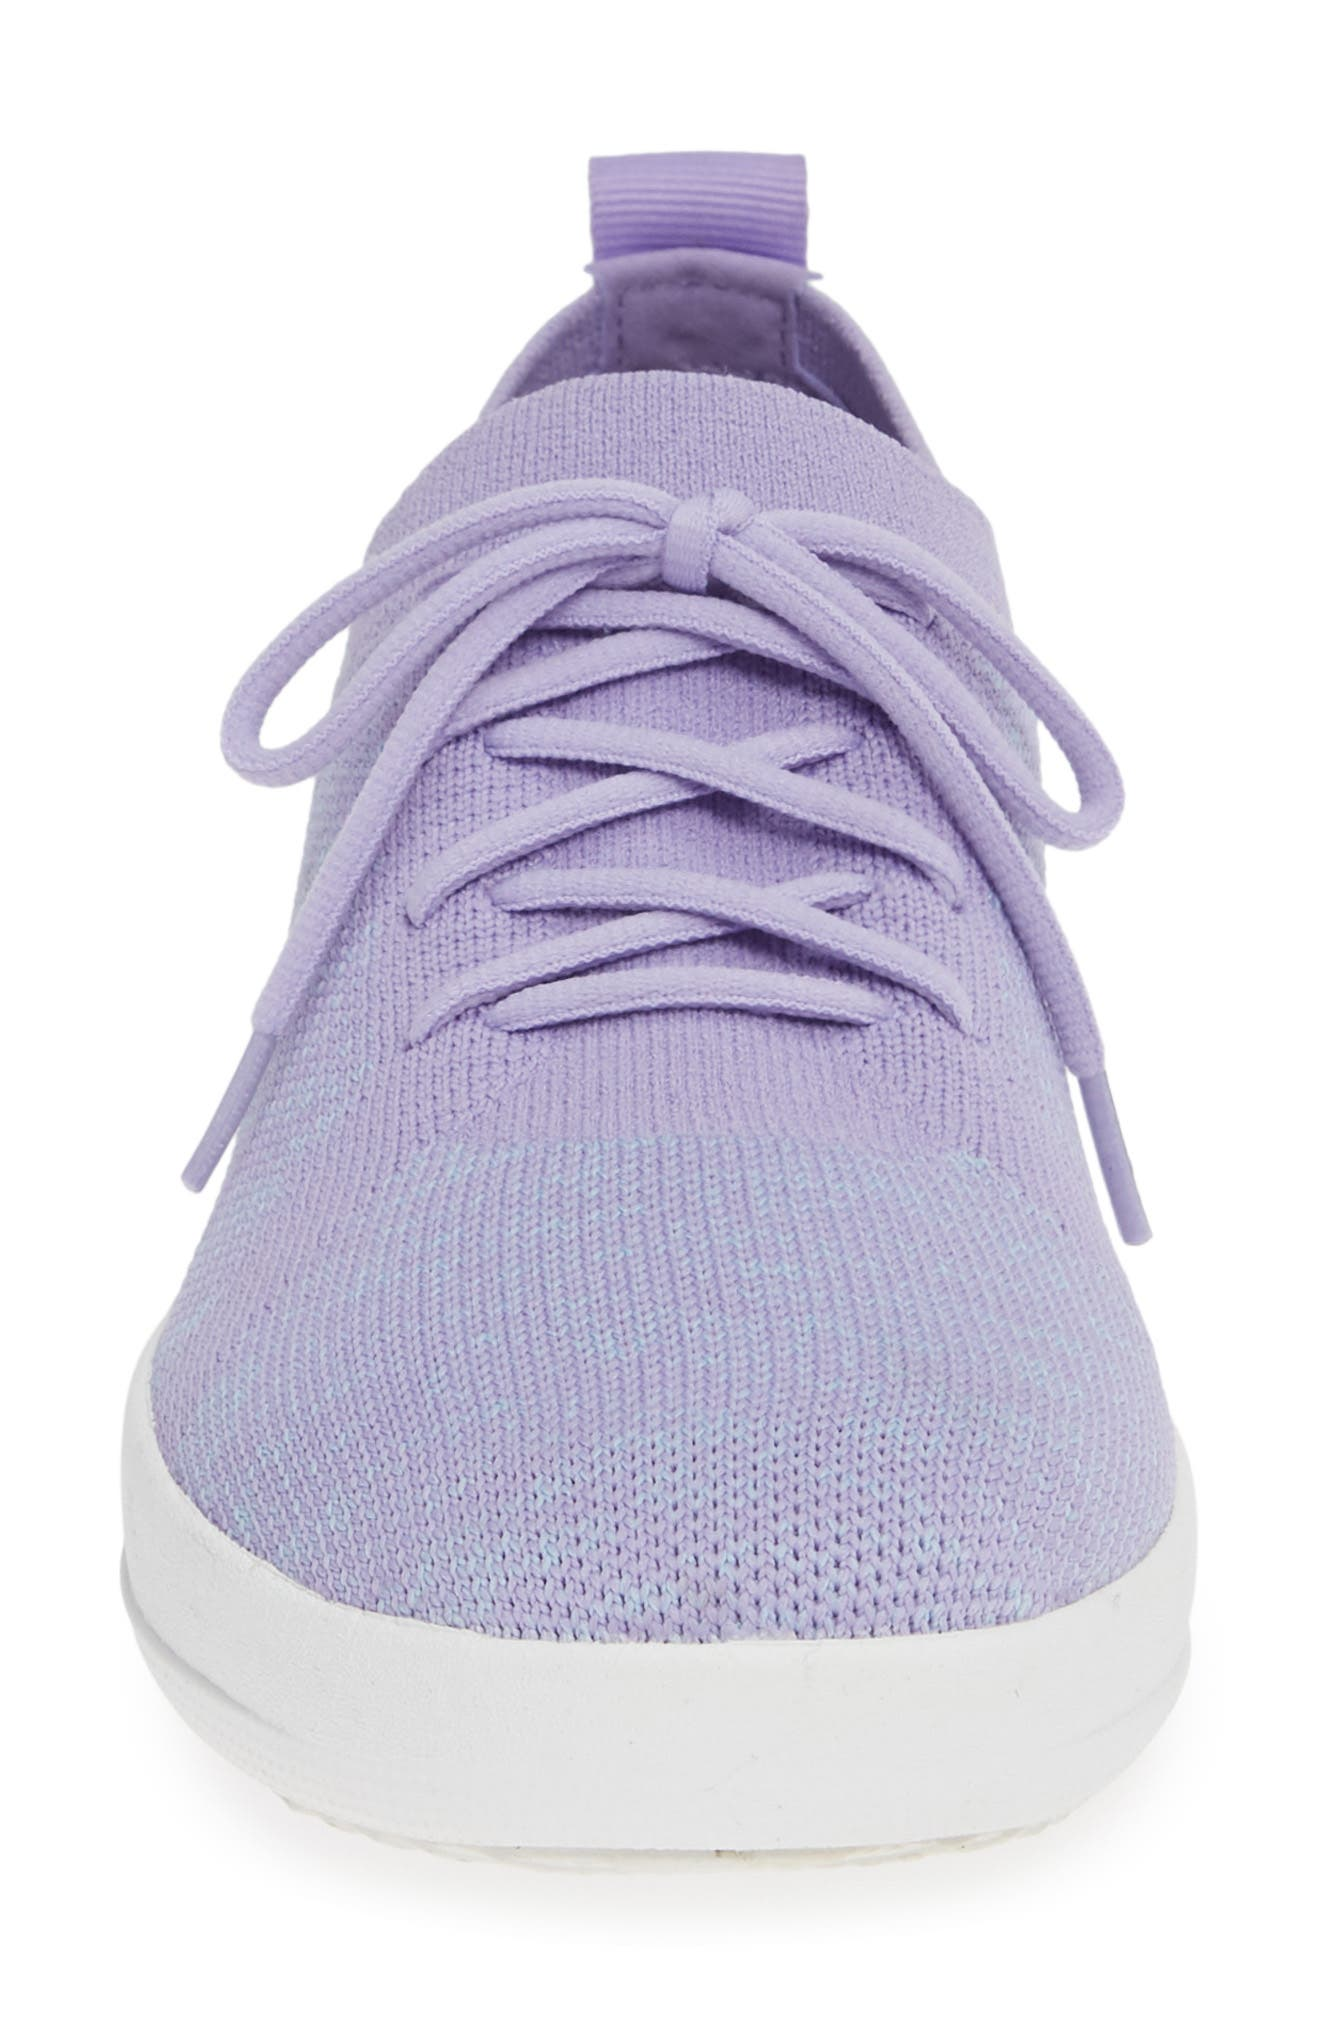 FITFLOP, F-Sporty Uberknit<sup>™</sup> Sneaker, Alternate thumbnail 4, color, 535